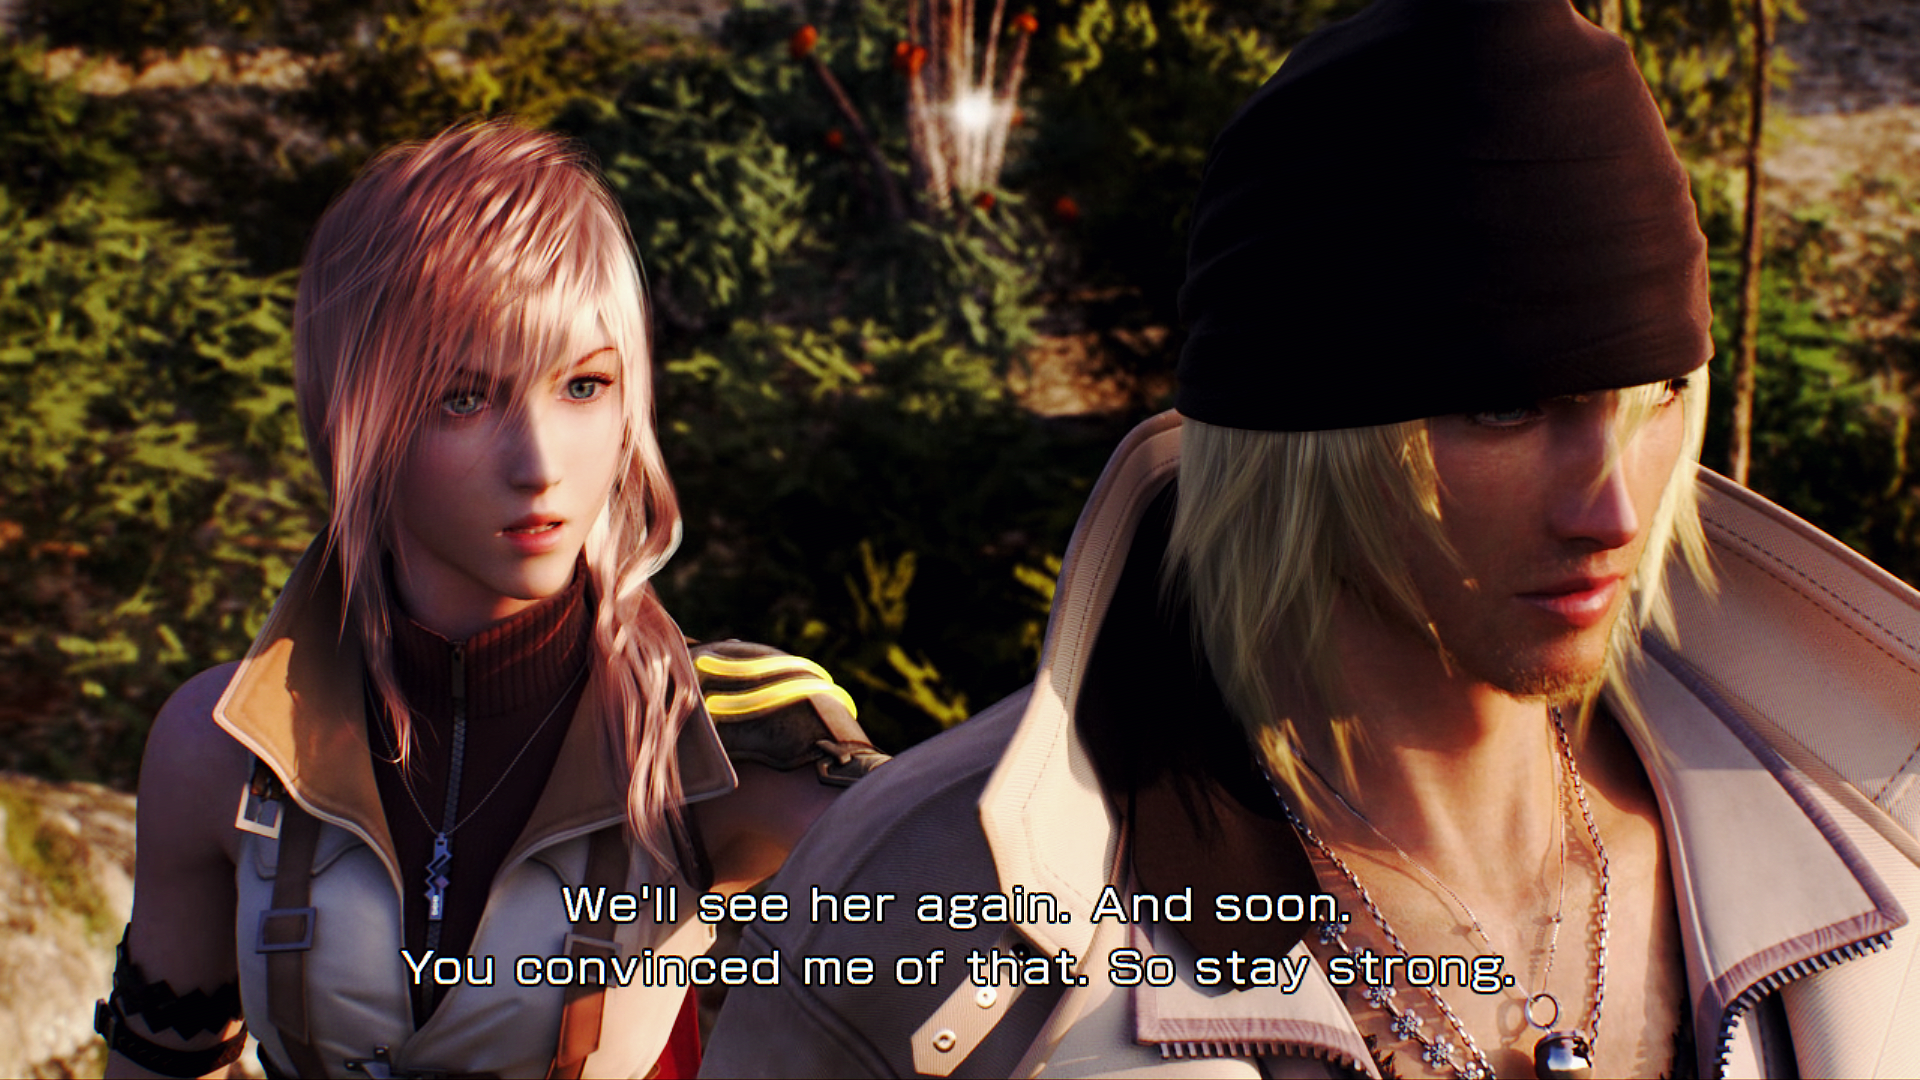 http://images.wikia.com/finalfantasy/images/1/17/Lightning_Snow.png